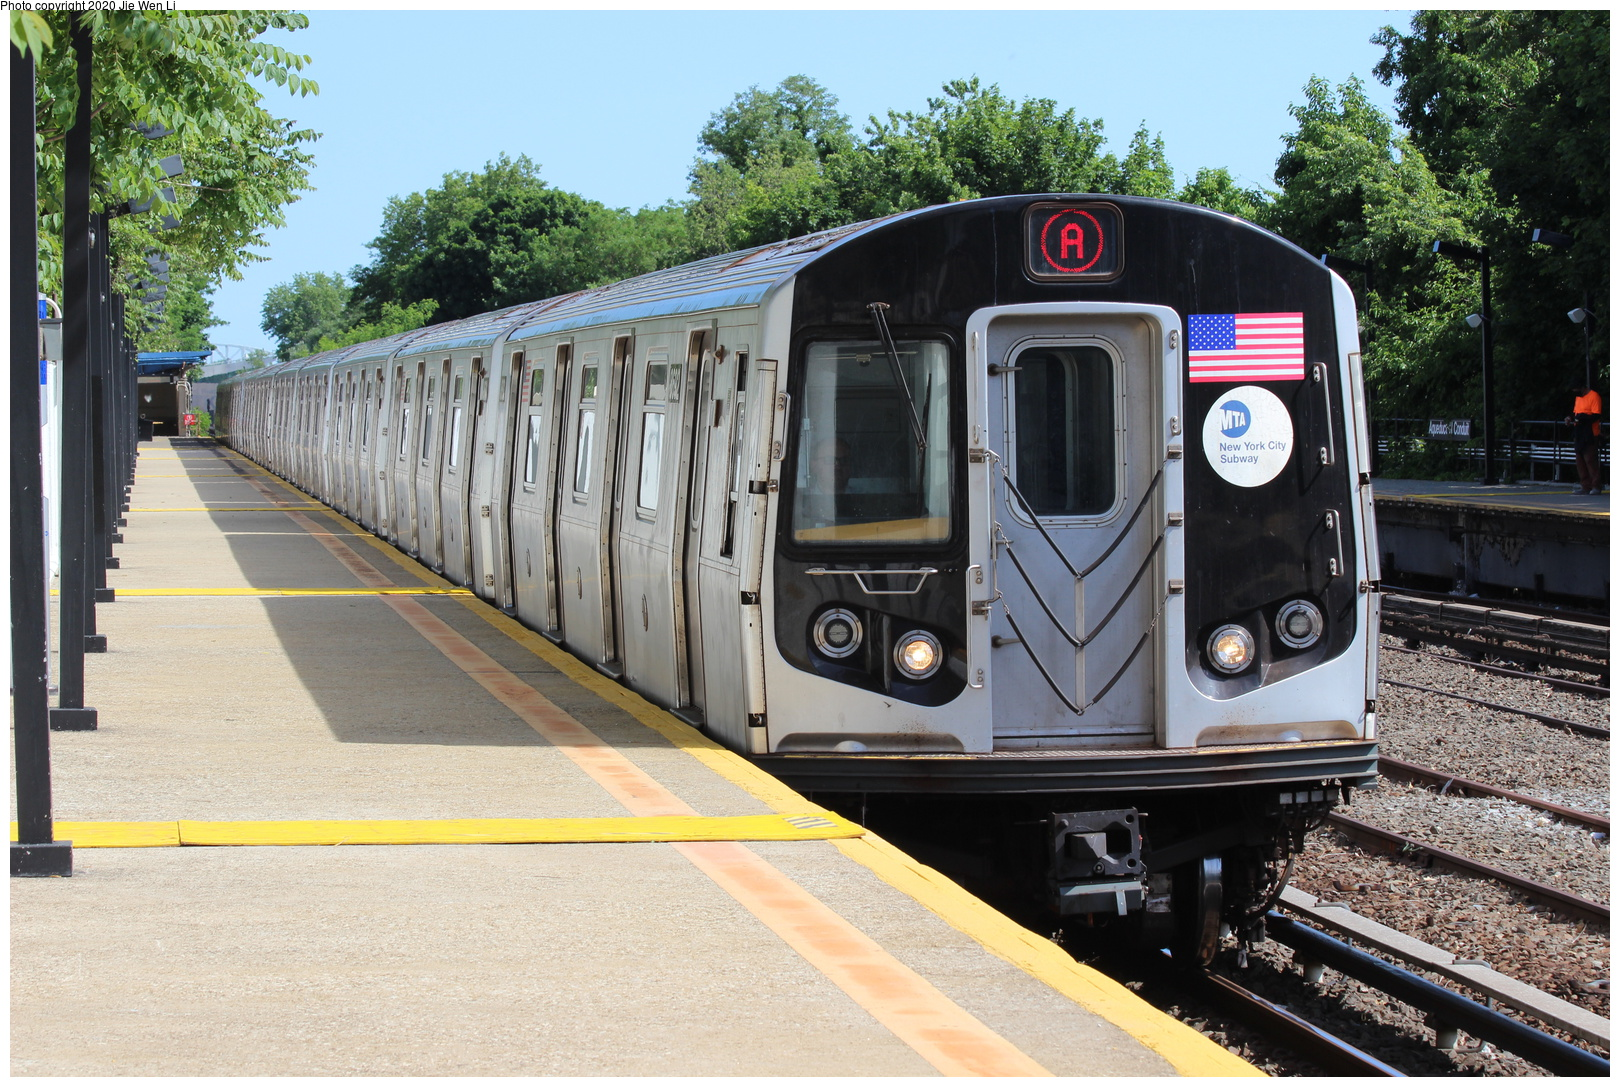 (261k, 1044x1037)<br><b>Country:</b> United States<br><b>City:</b> New York<br><b>System:</b> New York City Transit<br><b>Line:</b> BMT Canarsie Line<br><b>Location:</b> Broadway Junction <br><b>Car:</b> BMT Multi  <br><b>Photo by:</b> Joel Shanus<br><b>Notes:</b> Lefferts (Fulton line) train at Bway Jct.<br><b>Viewed (this week/total):</b> 0 / 1312